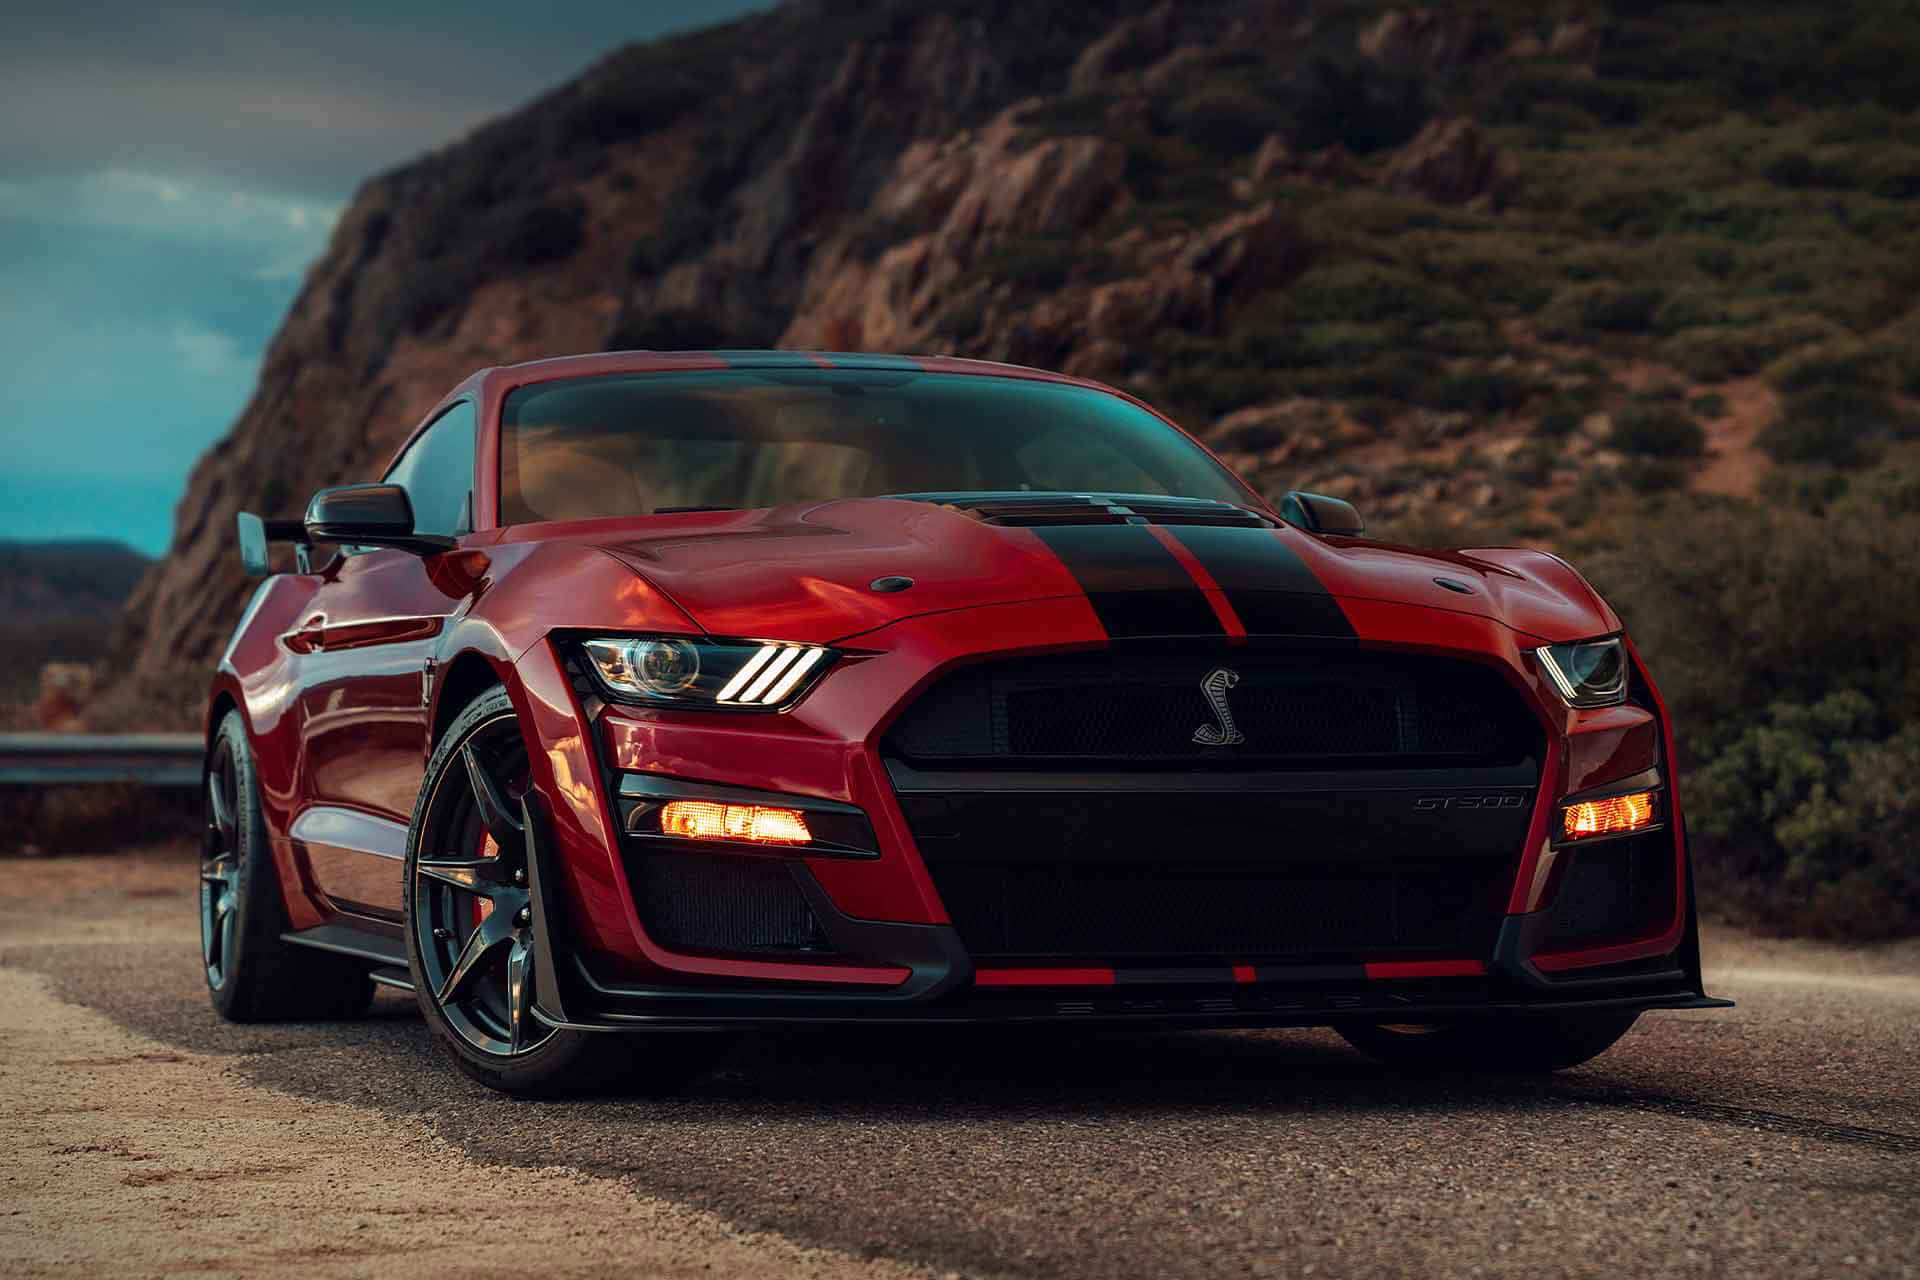 74 New 2020 Ford Mustang Shelby Gt500 Redesign and Concept